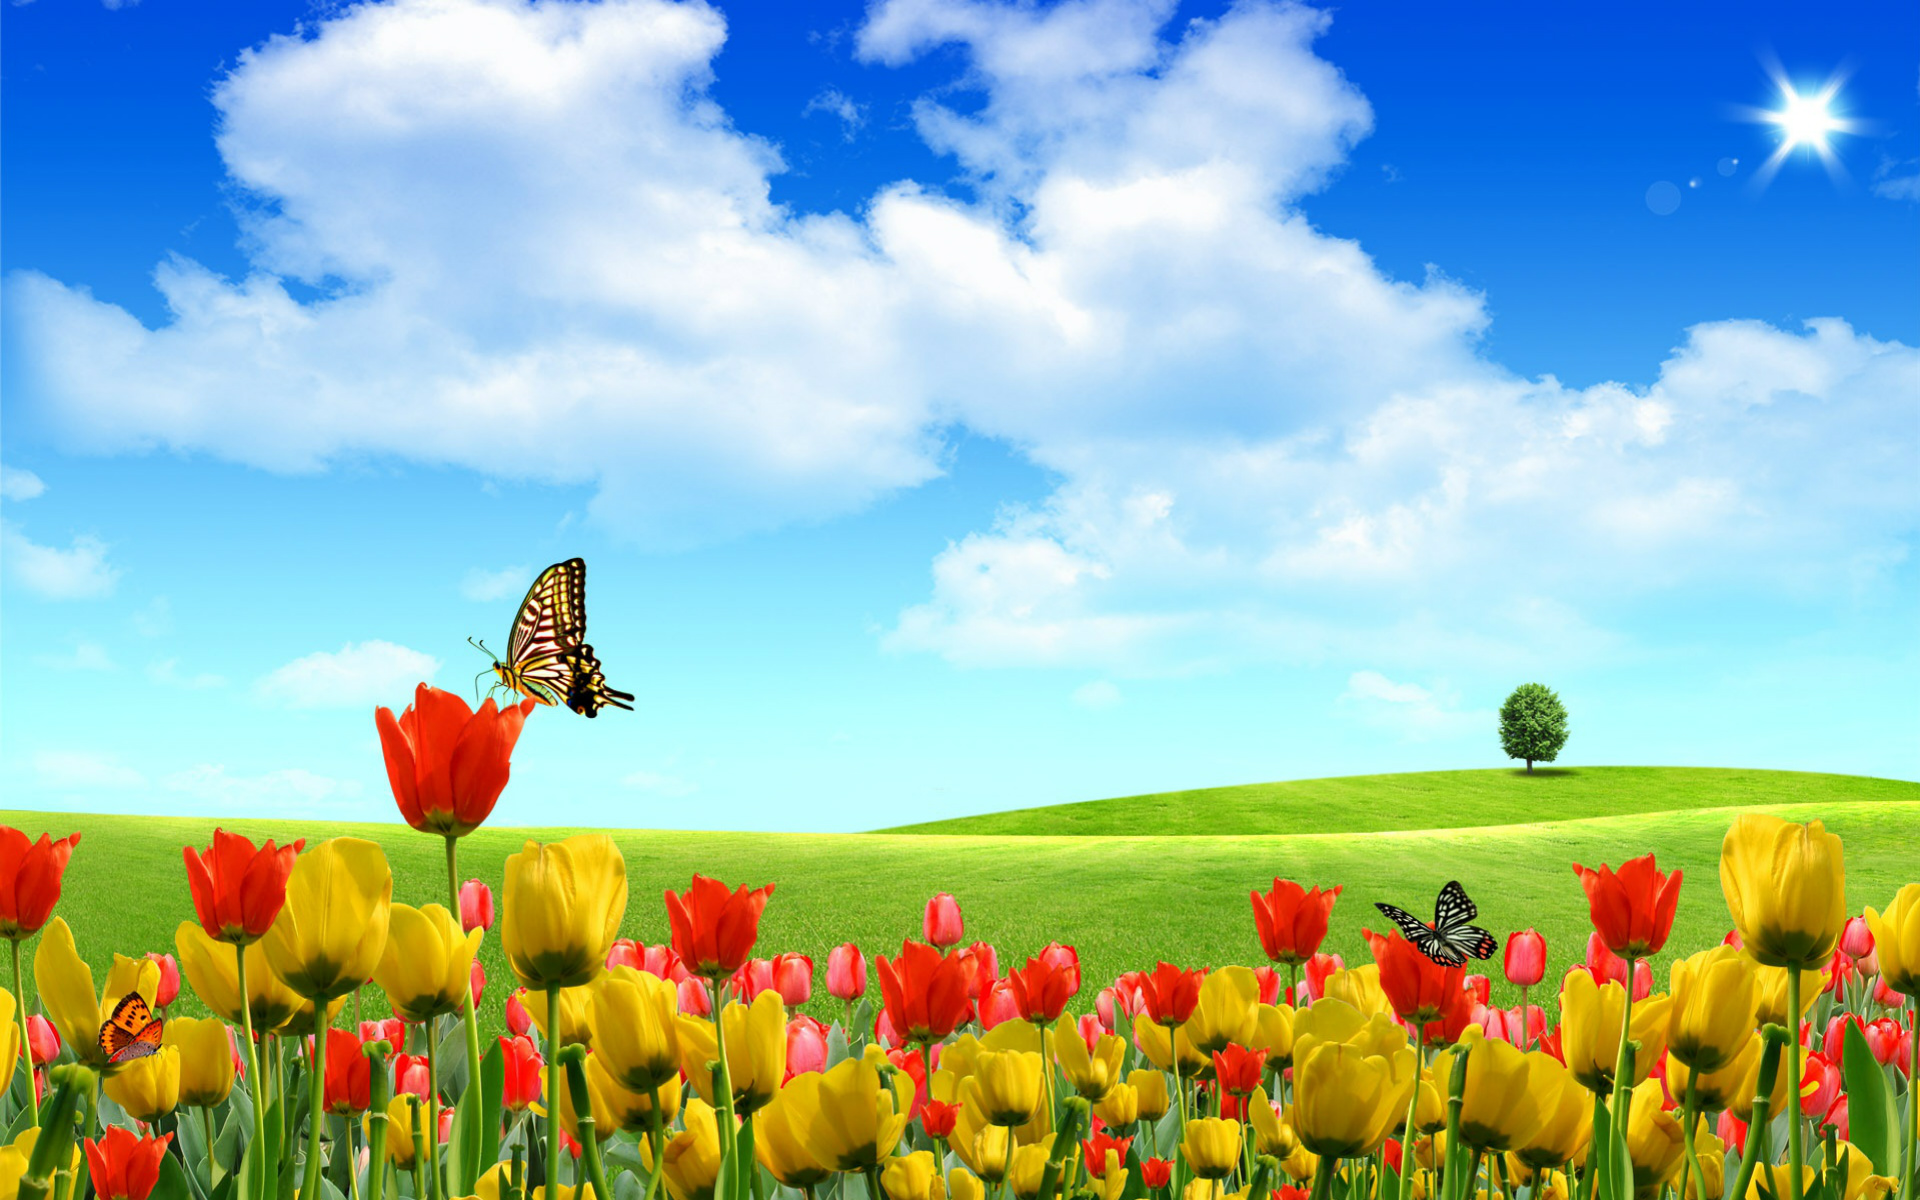 Cute Spring Wallpaper Cute spring wallpaper 1920x1200